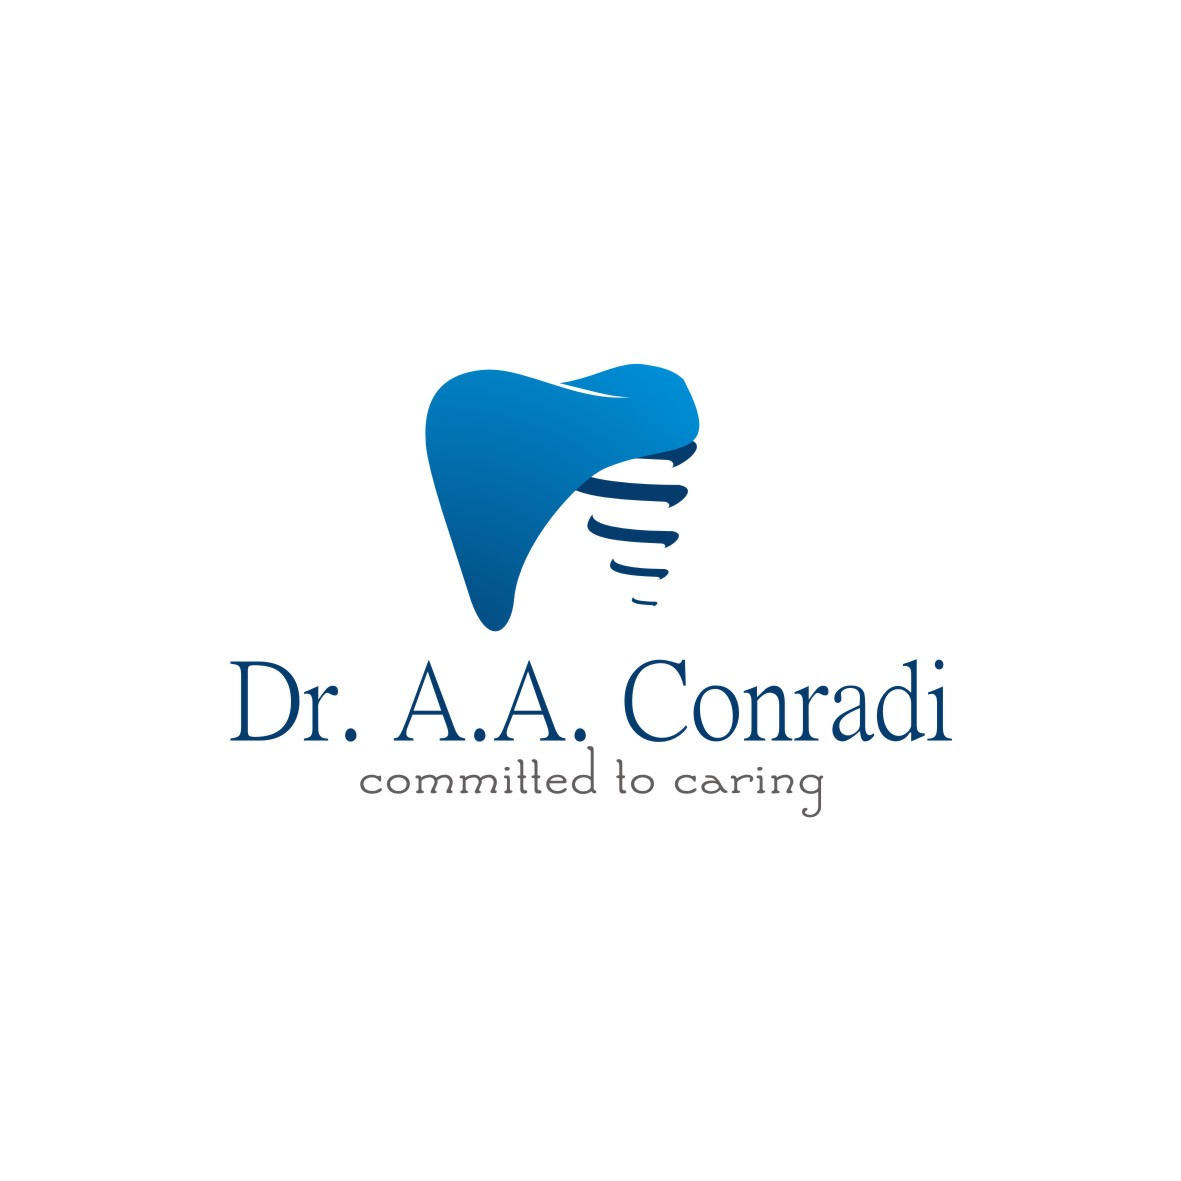 Logo Design by arteo_design - Entry No. 74 in the Logo Design Contest Unique Logo Design Wanted for Dr. A.A. Conradi.